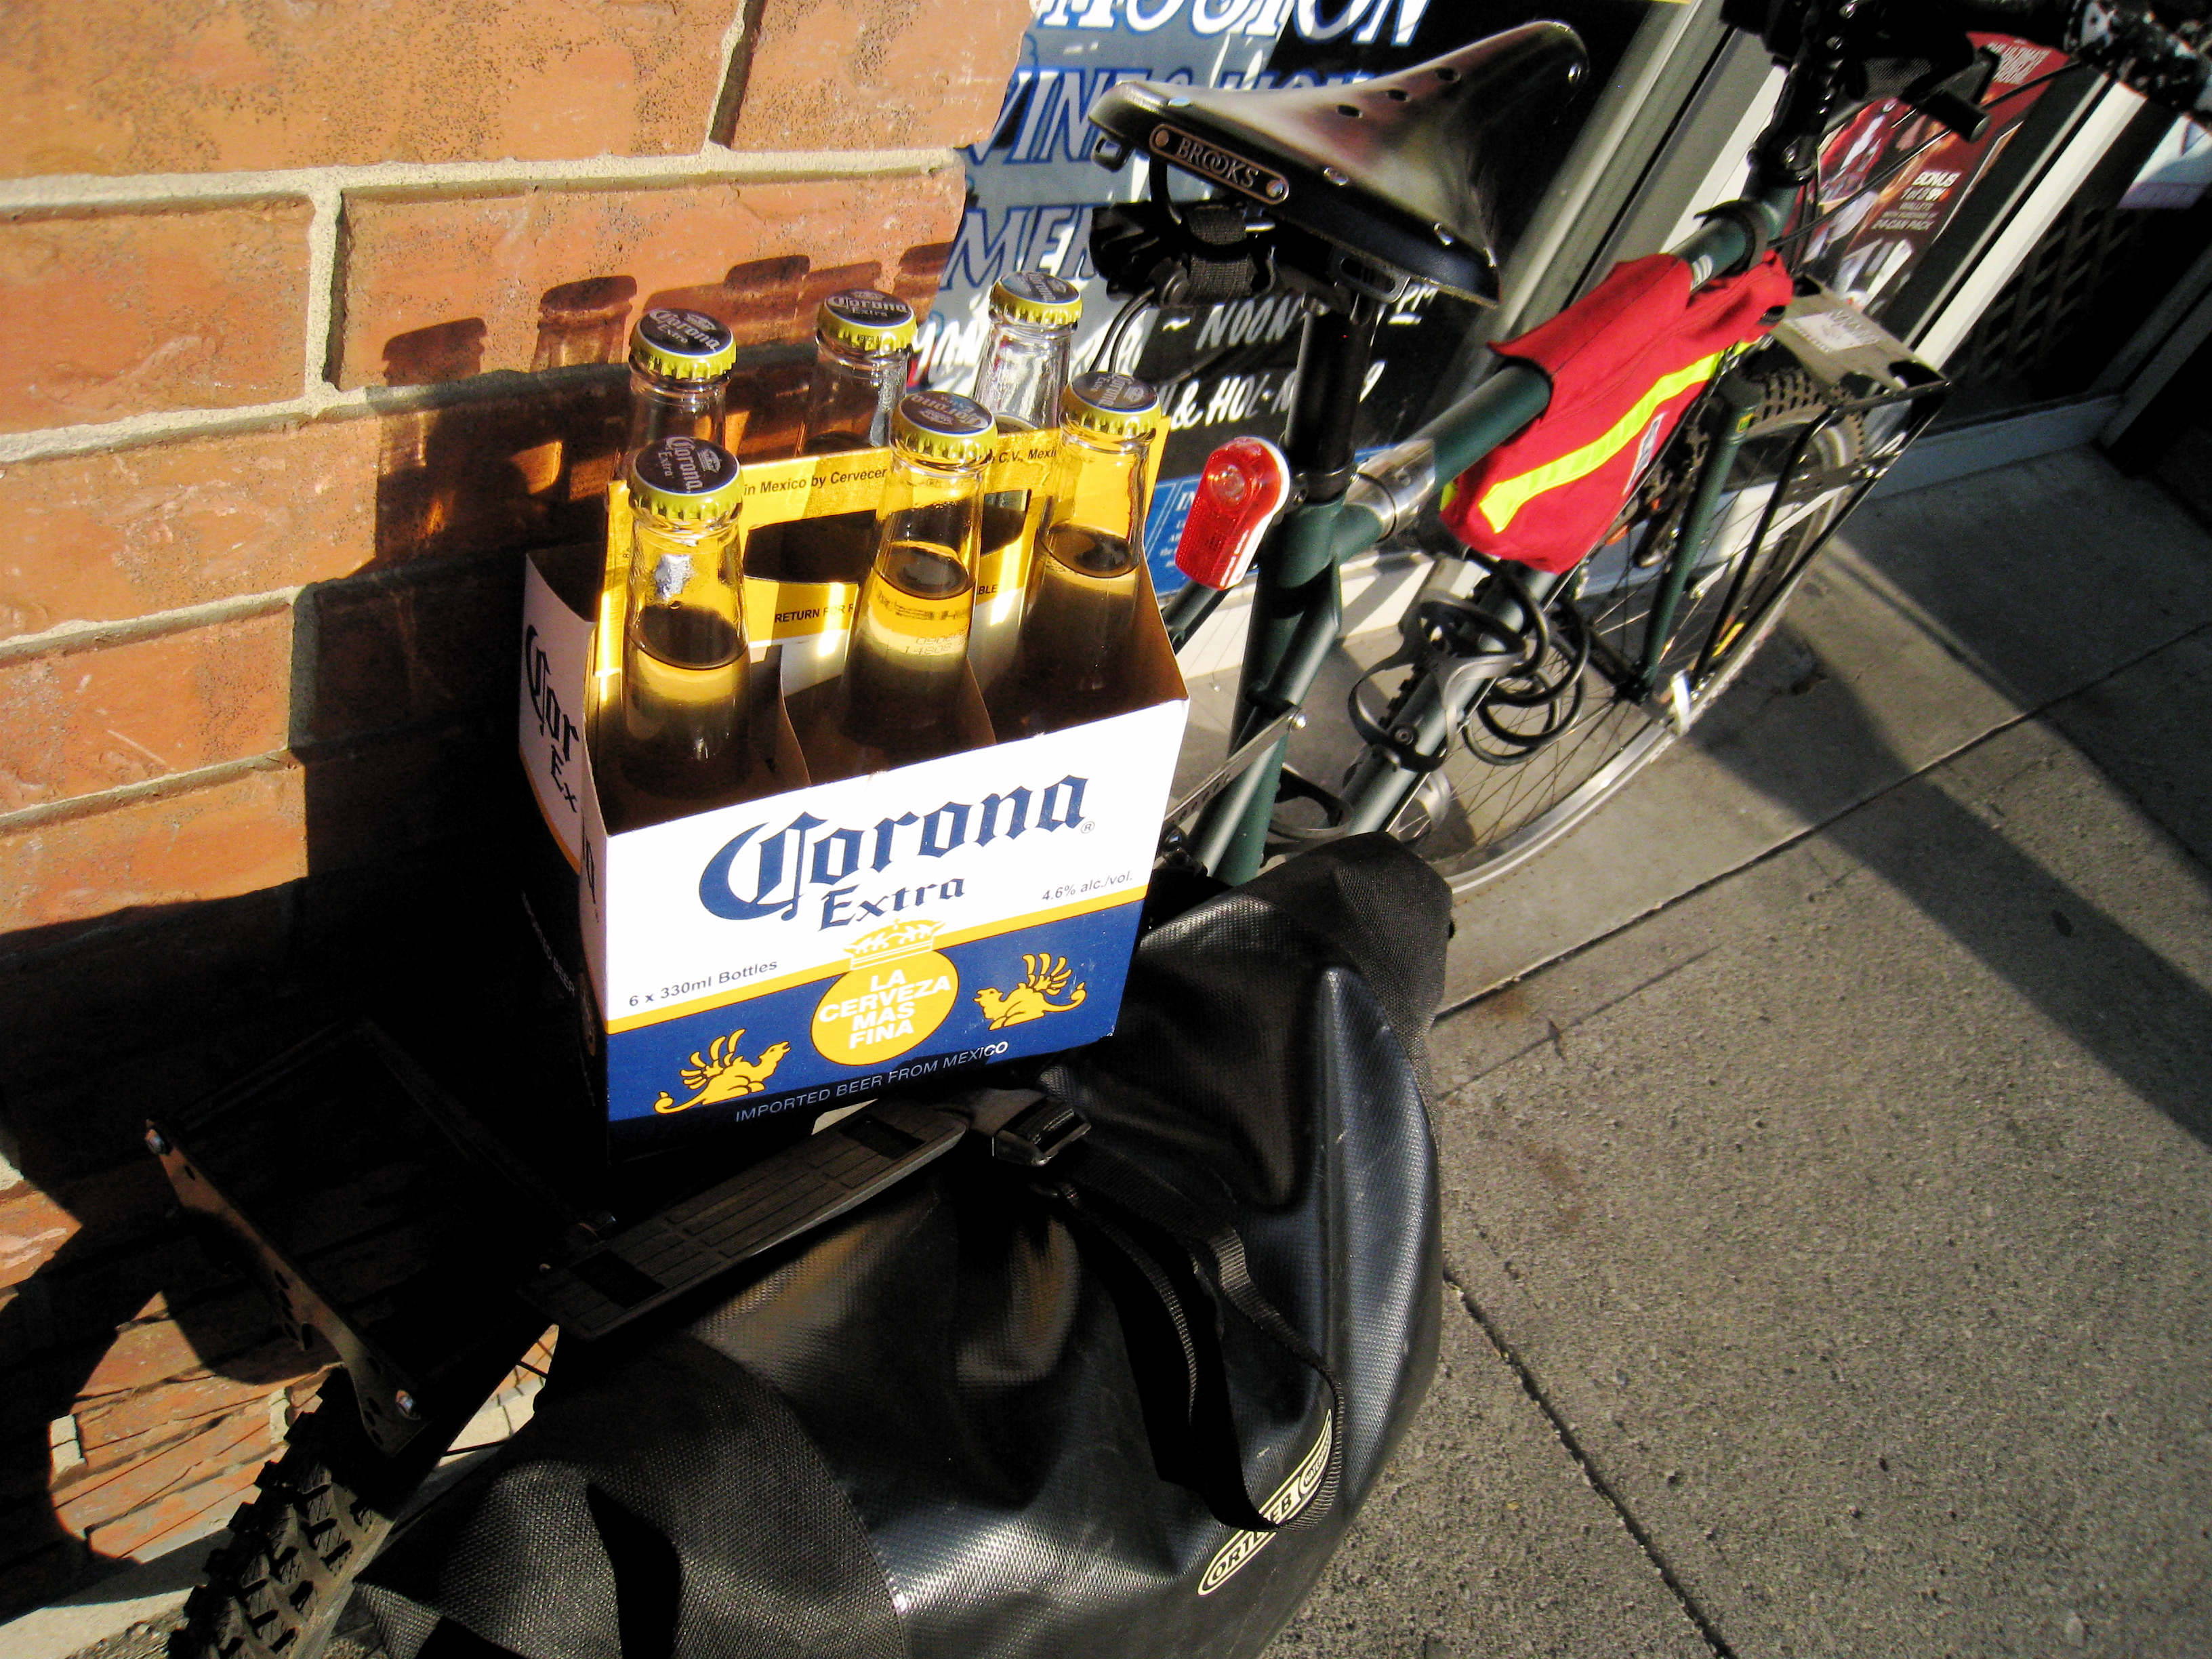 My kind of fully loaded bike touring...